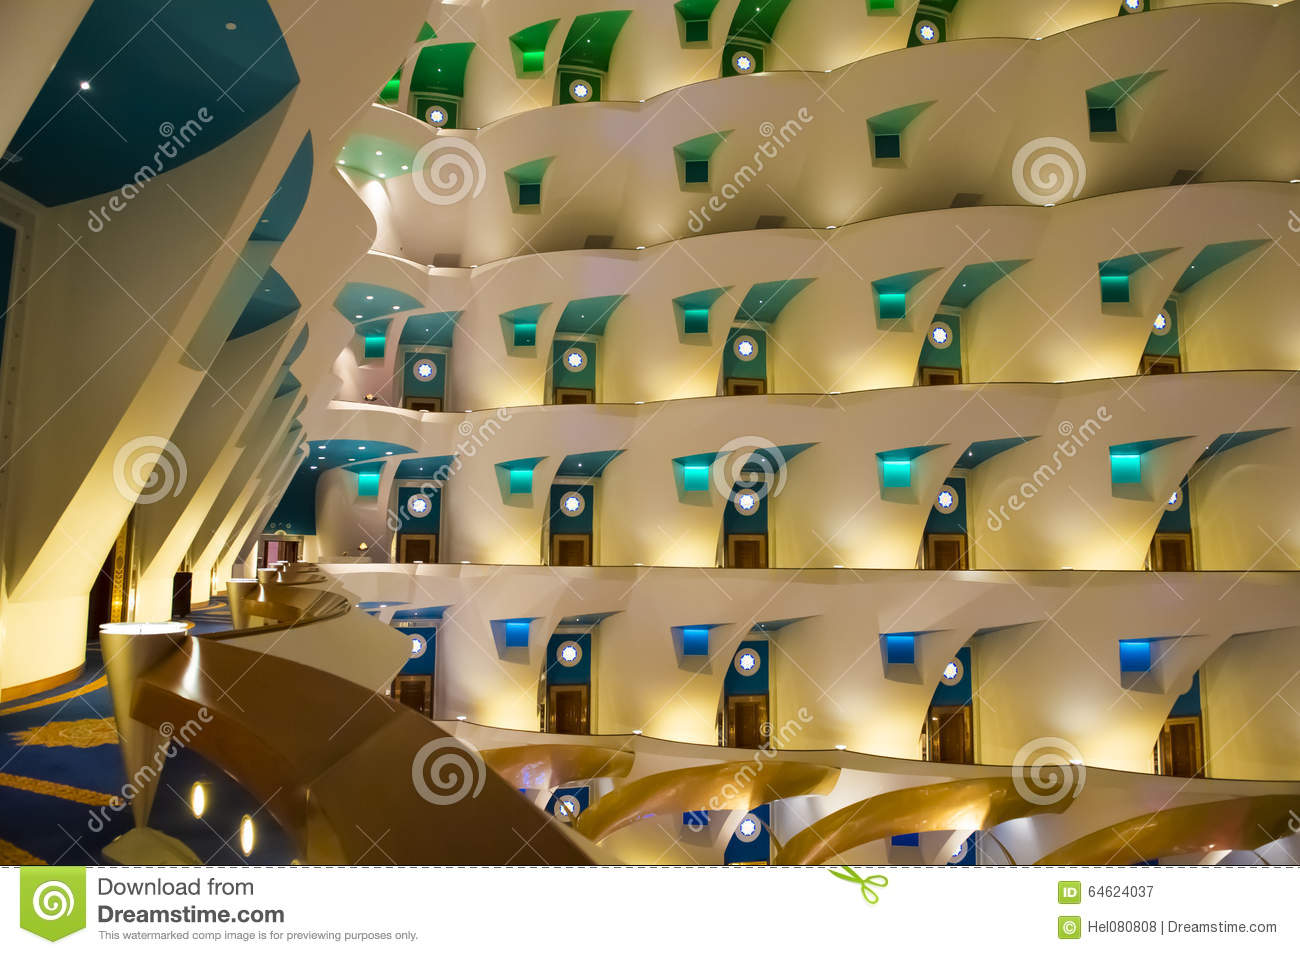 Hotel Burj Al Arab Interior Stock Photo Image 64624037